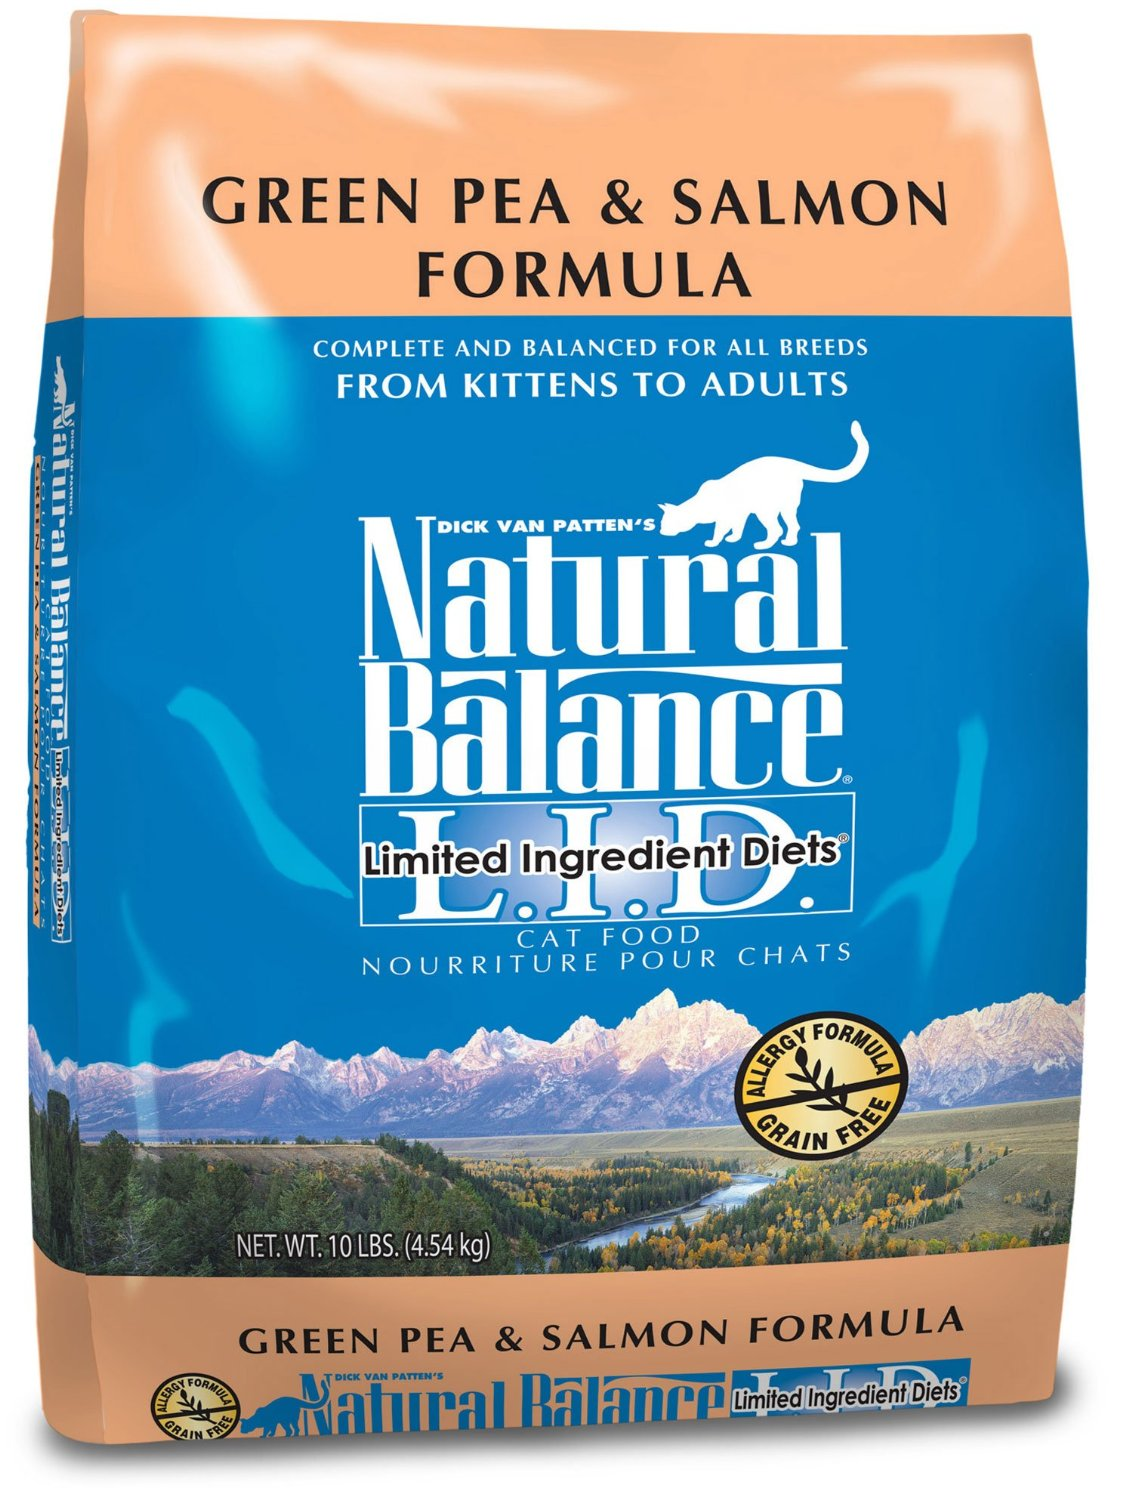 Natural Balance L.I.D. Limited Ingredient Diets Green Pea & Salmon Formula Grain-Free Dry Cat Food 10lbs